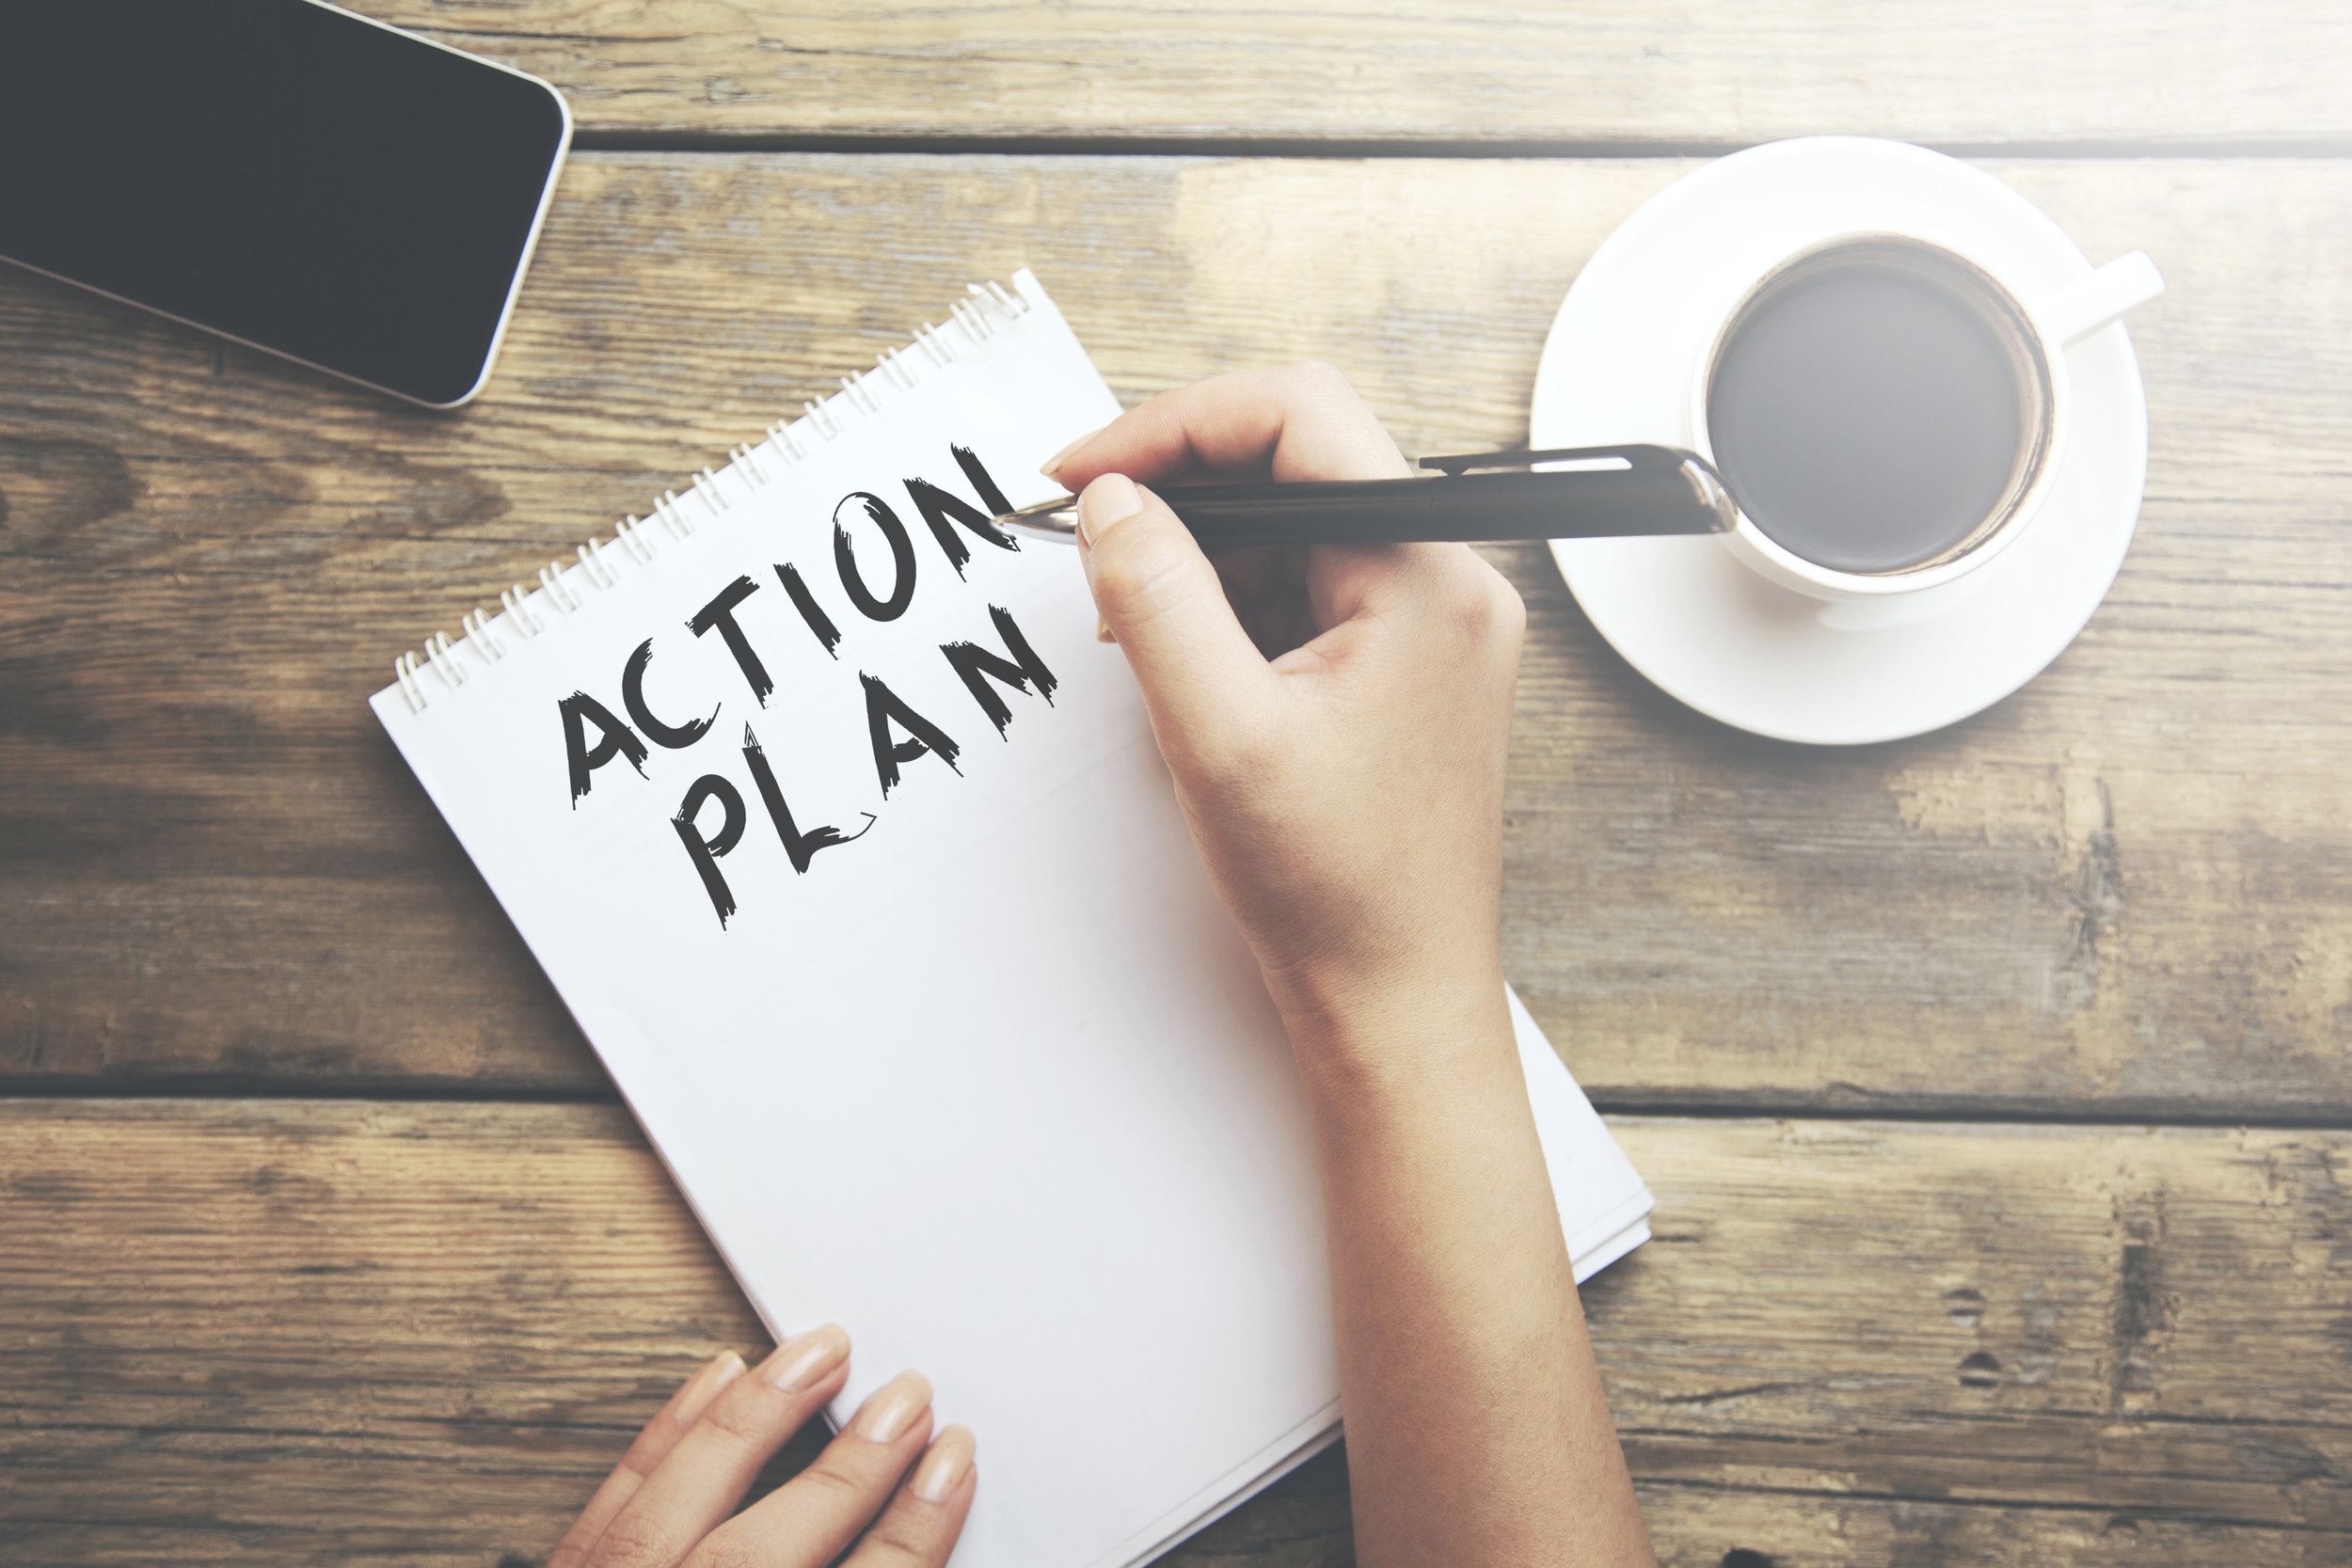 STRATEGIC COMMUNICATIONS - When you lack direction, Atlas will provide the insight to help you get to where you want to go. Our experienced strategists will build the communications road map and timeline to ensure milestones are met and results are achieved through our comprehensive strategic communications planning process.